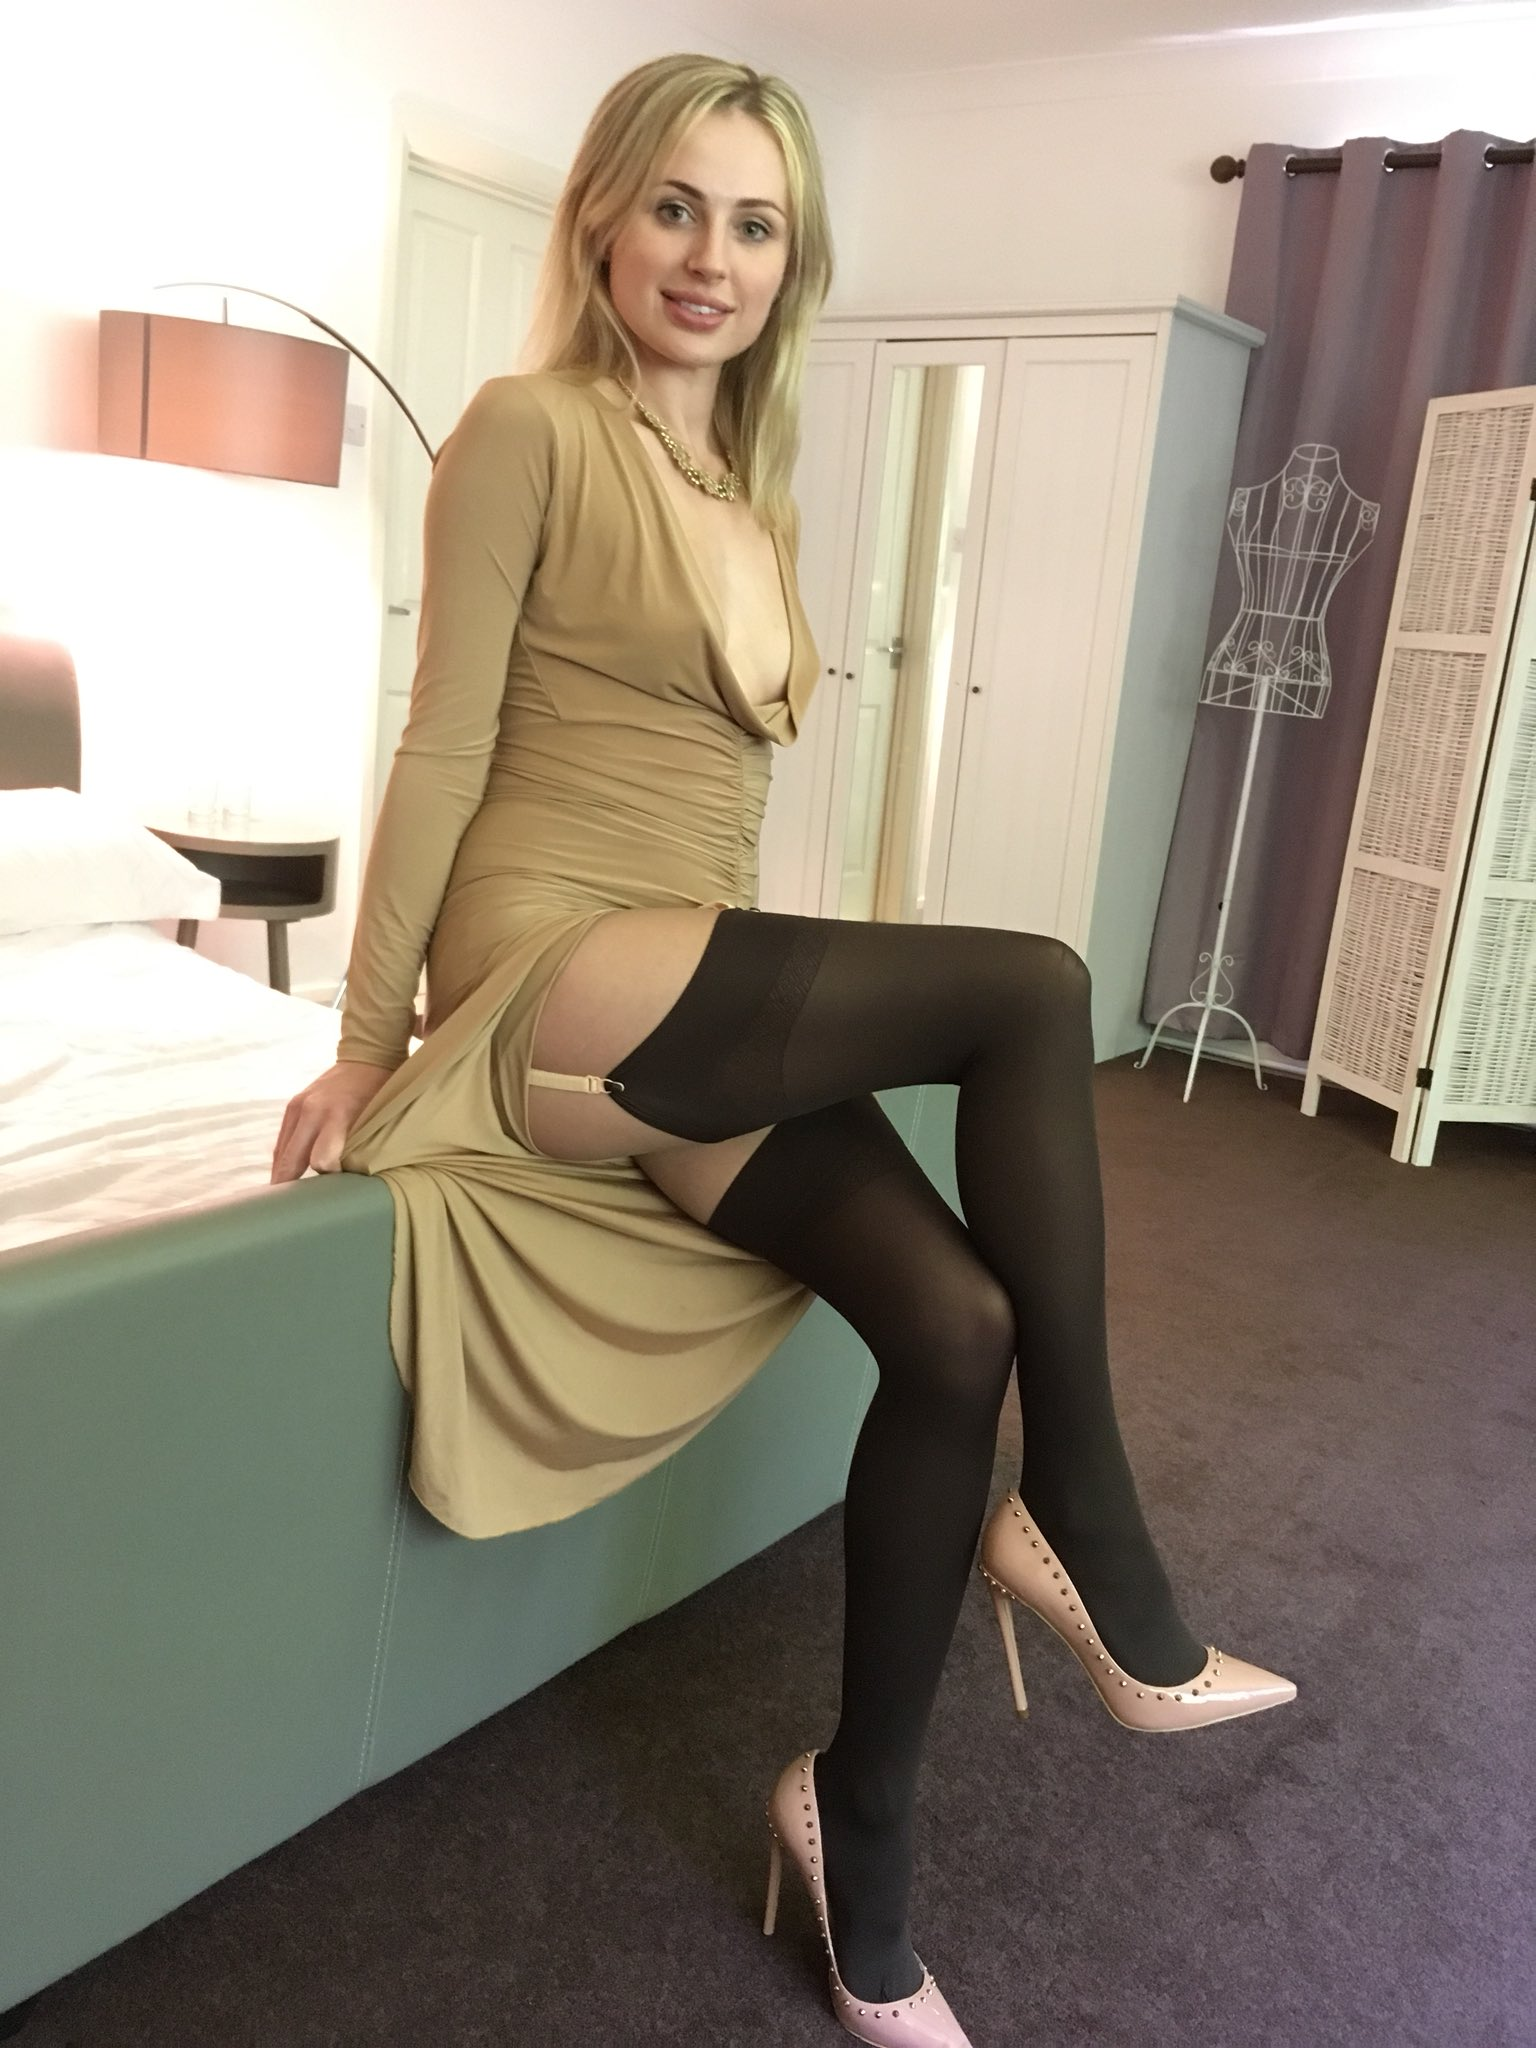 All Pantyhose only tease stockings speaking